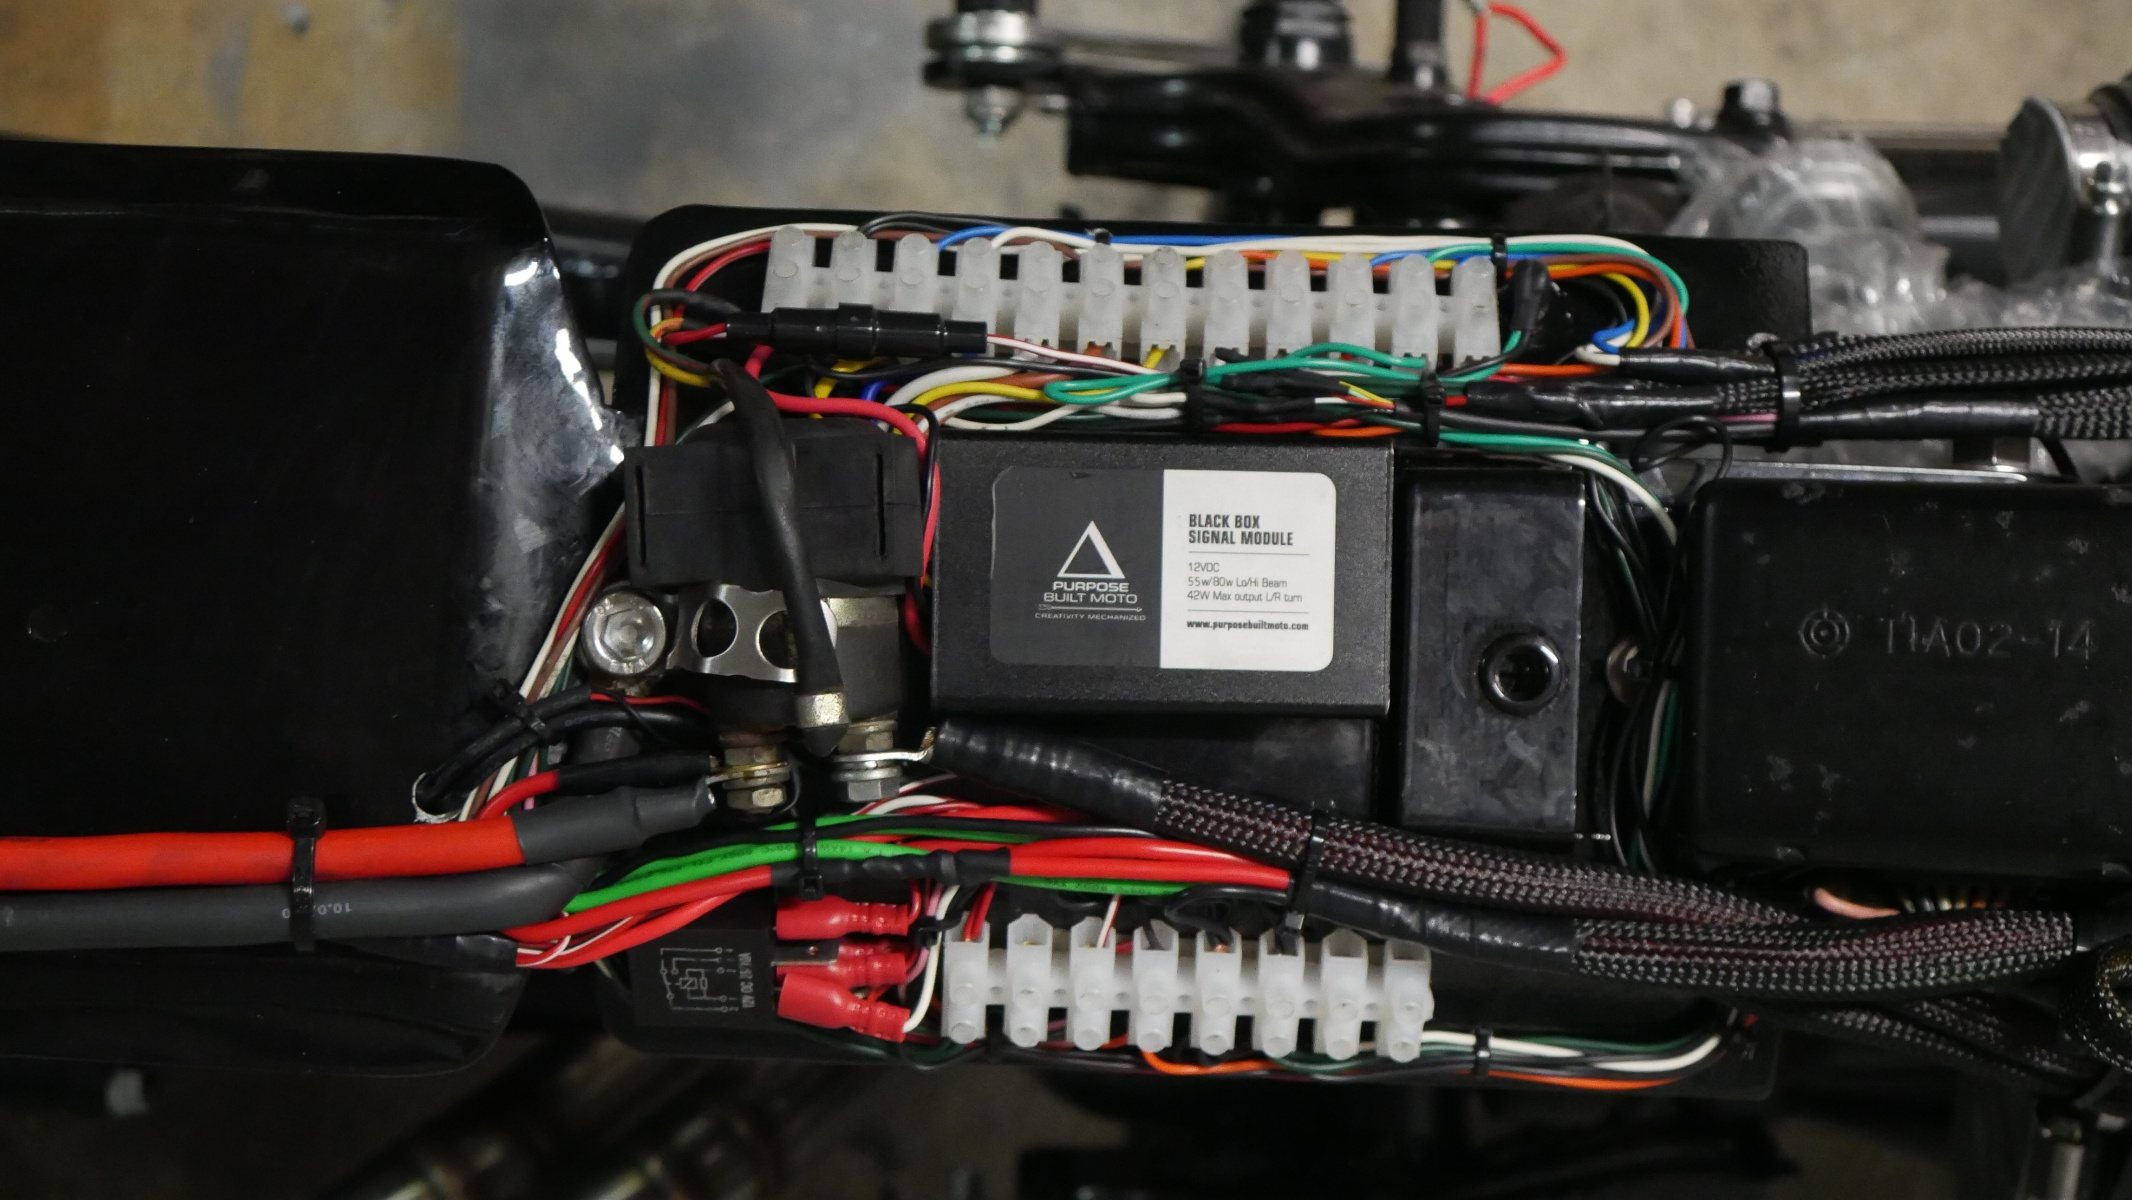 top 5 wiring mistakes to avoid when wiring your custom bike tutorial motorcycle wiring 101 bike exif